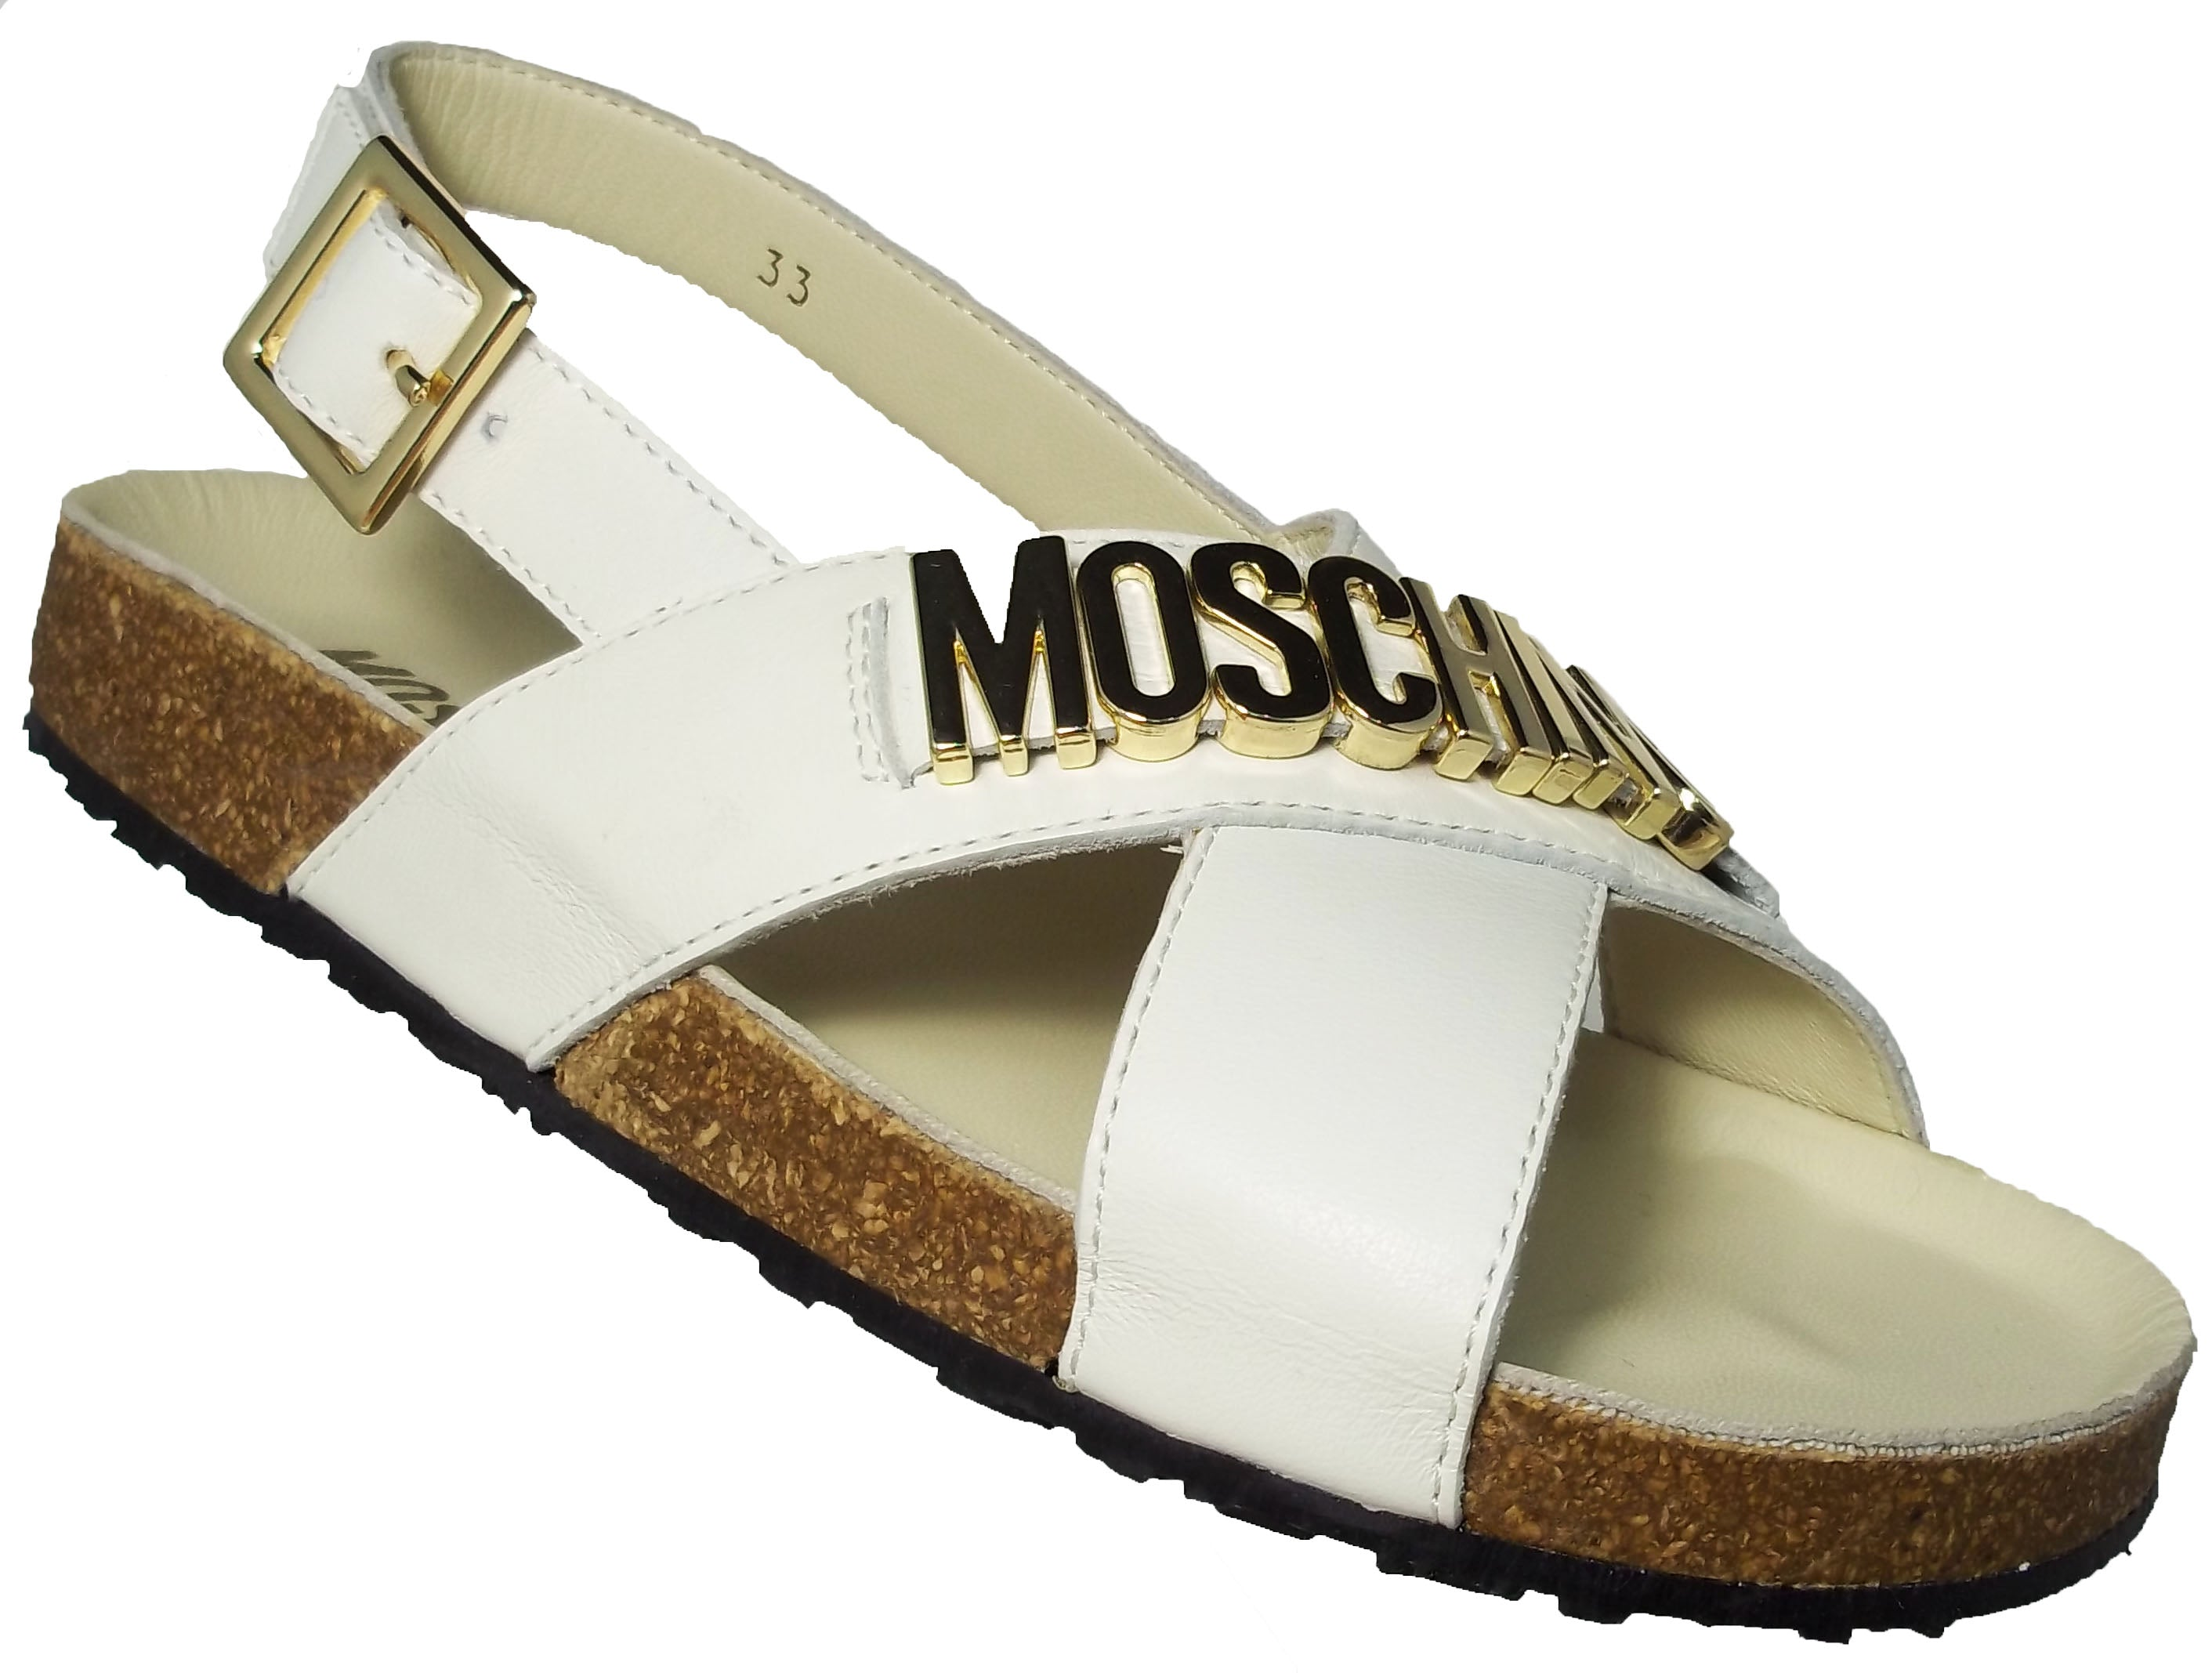 *FINAL SALE* Moschino 25870 - Panna